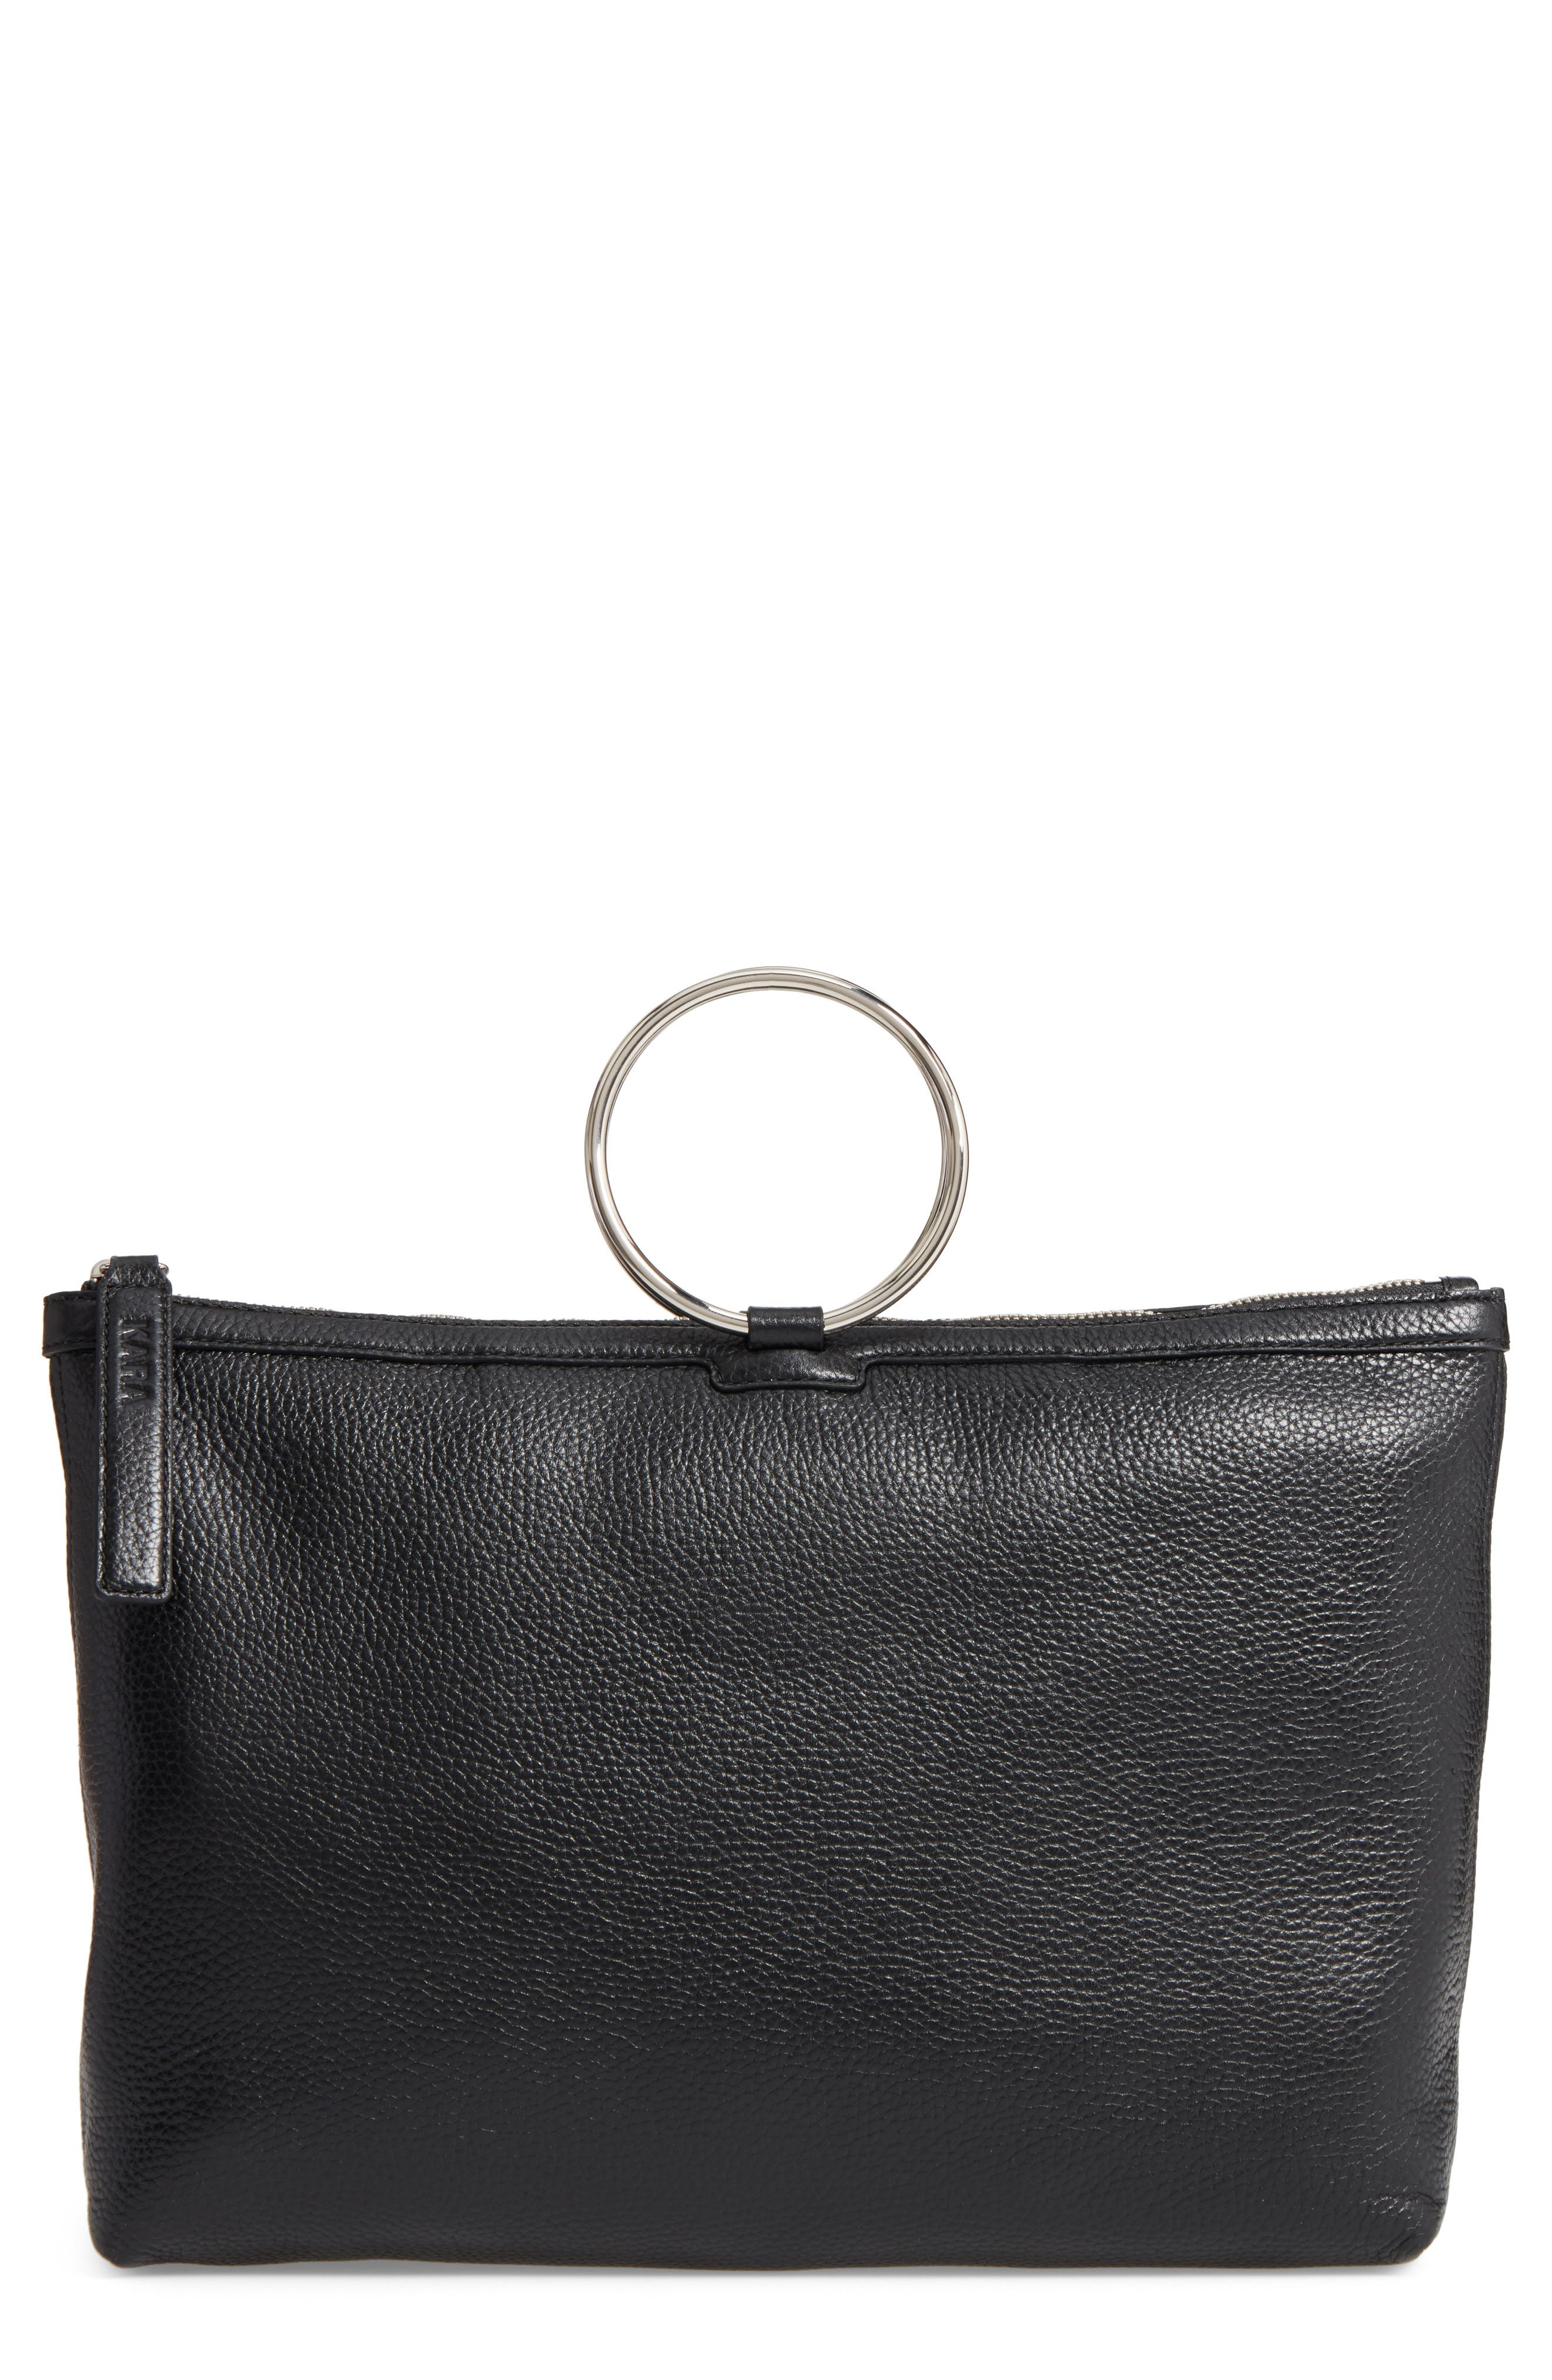 KARA, Large Pebbled Leather Ring Clutch, Main thumbnail 1, color, 001